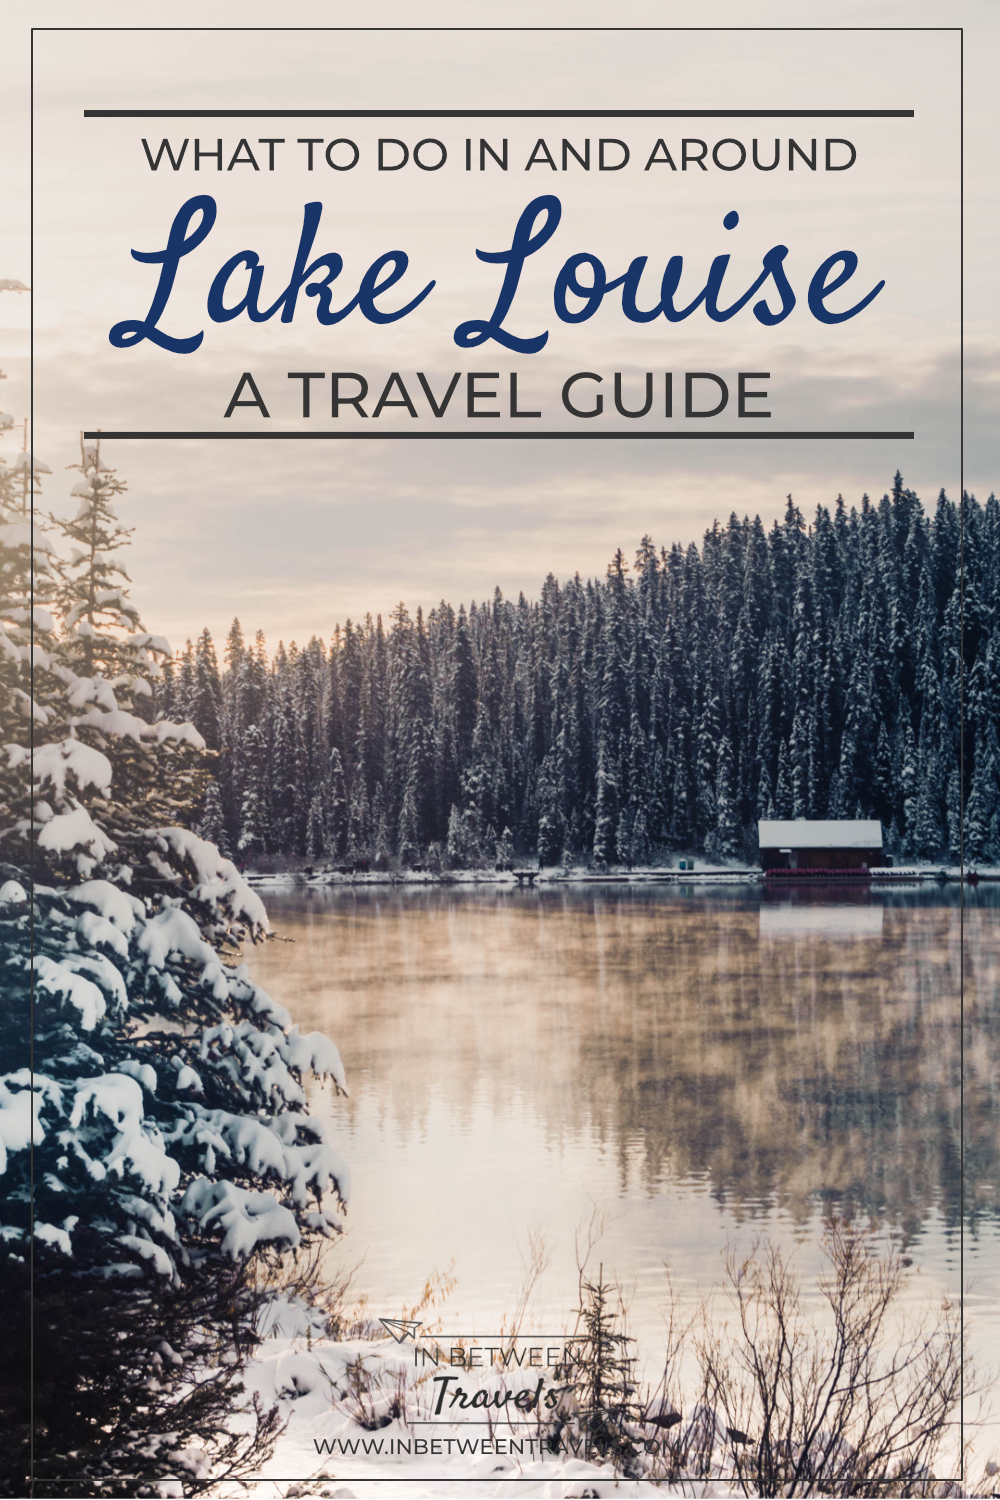 In and around Lake Louise Travel Guide